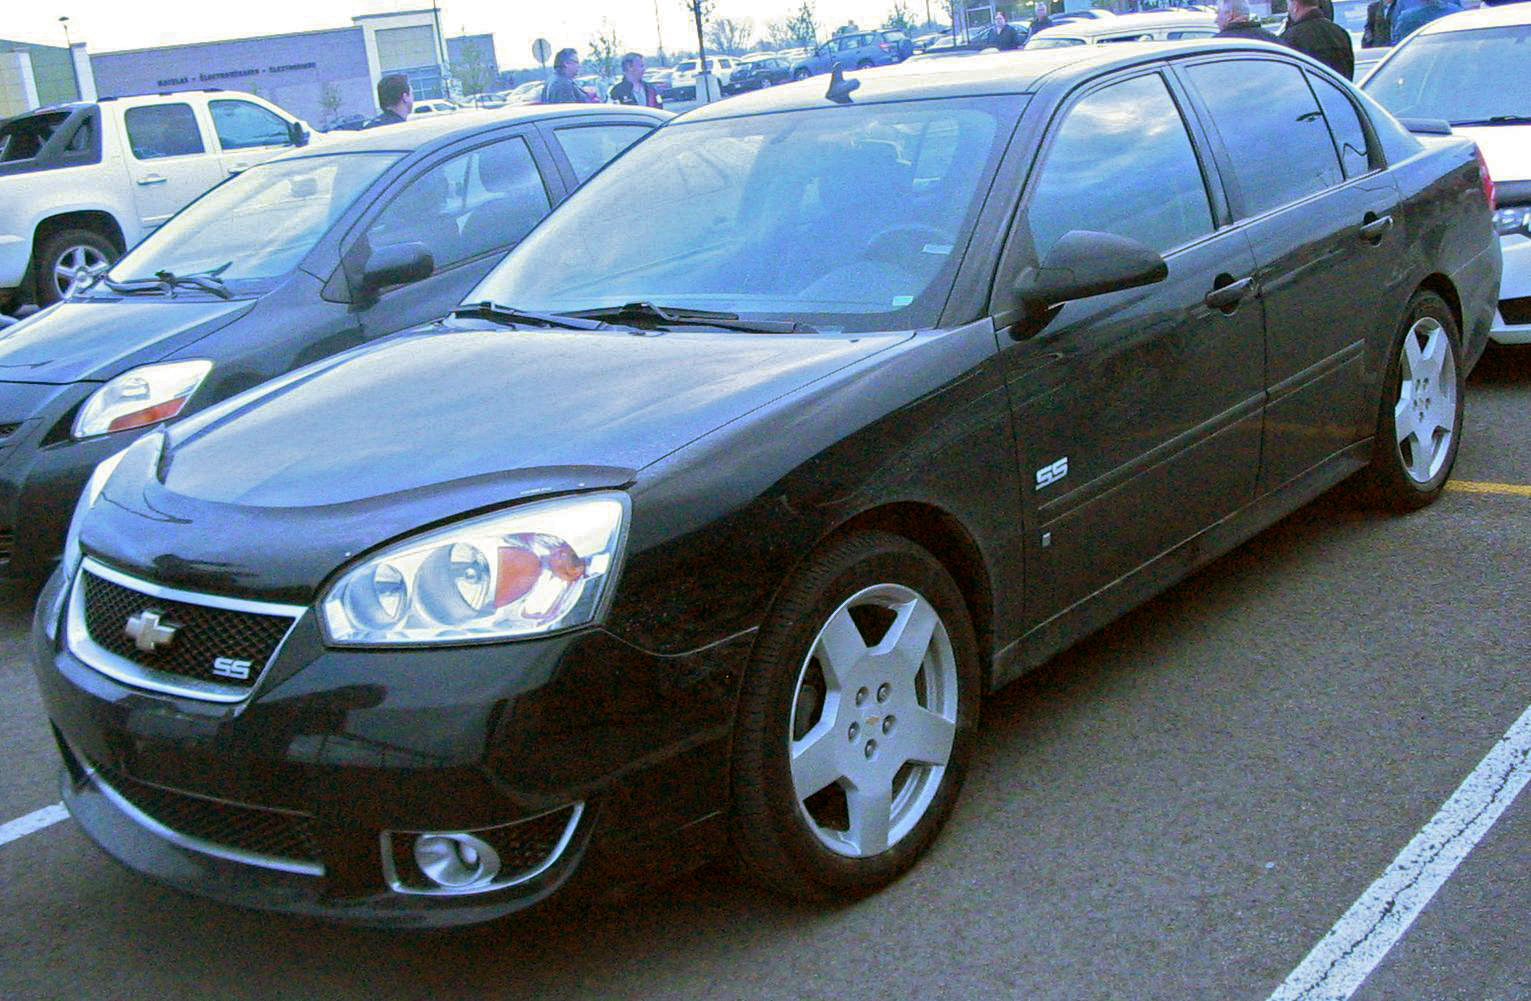 File0607 Chevrolet Malibu SS Les chauds vendredis 12JPG